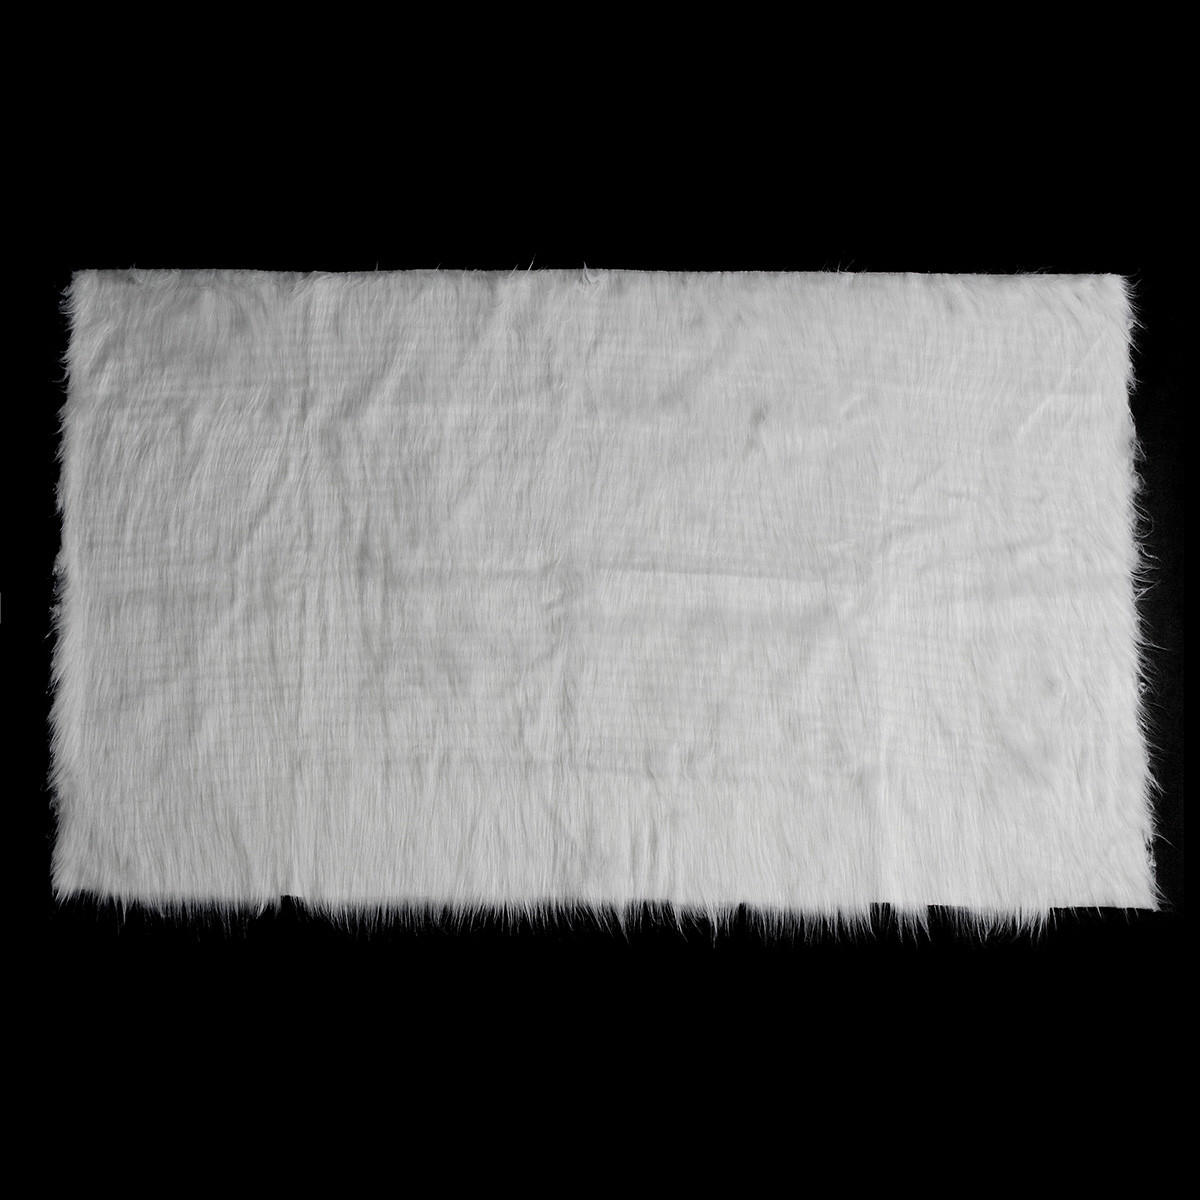 White Shaggy Fur Fabric Long Pile Fur Costumes Photographic Backdrops Prop